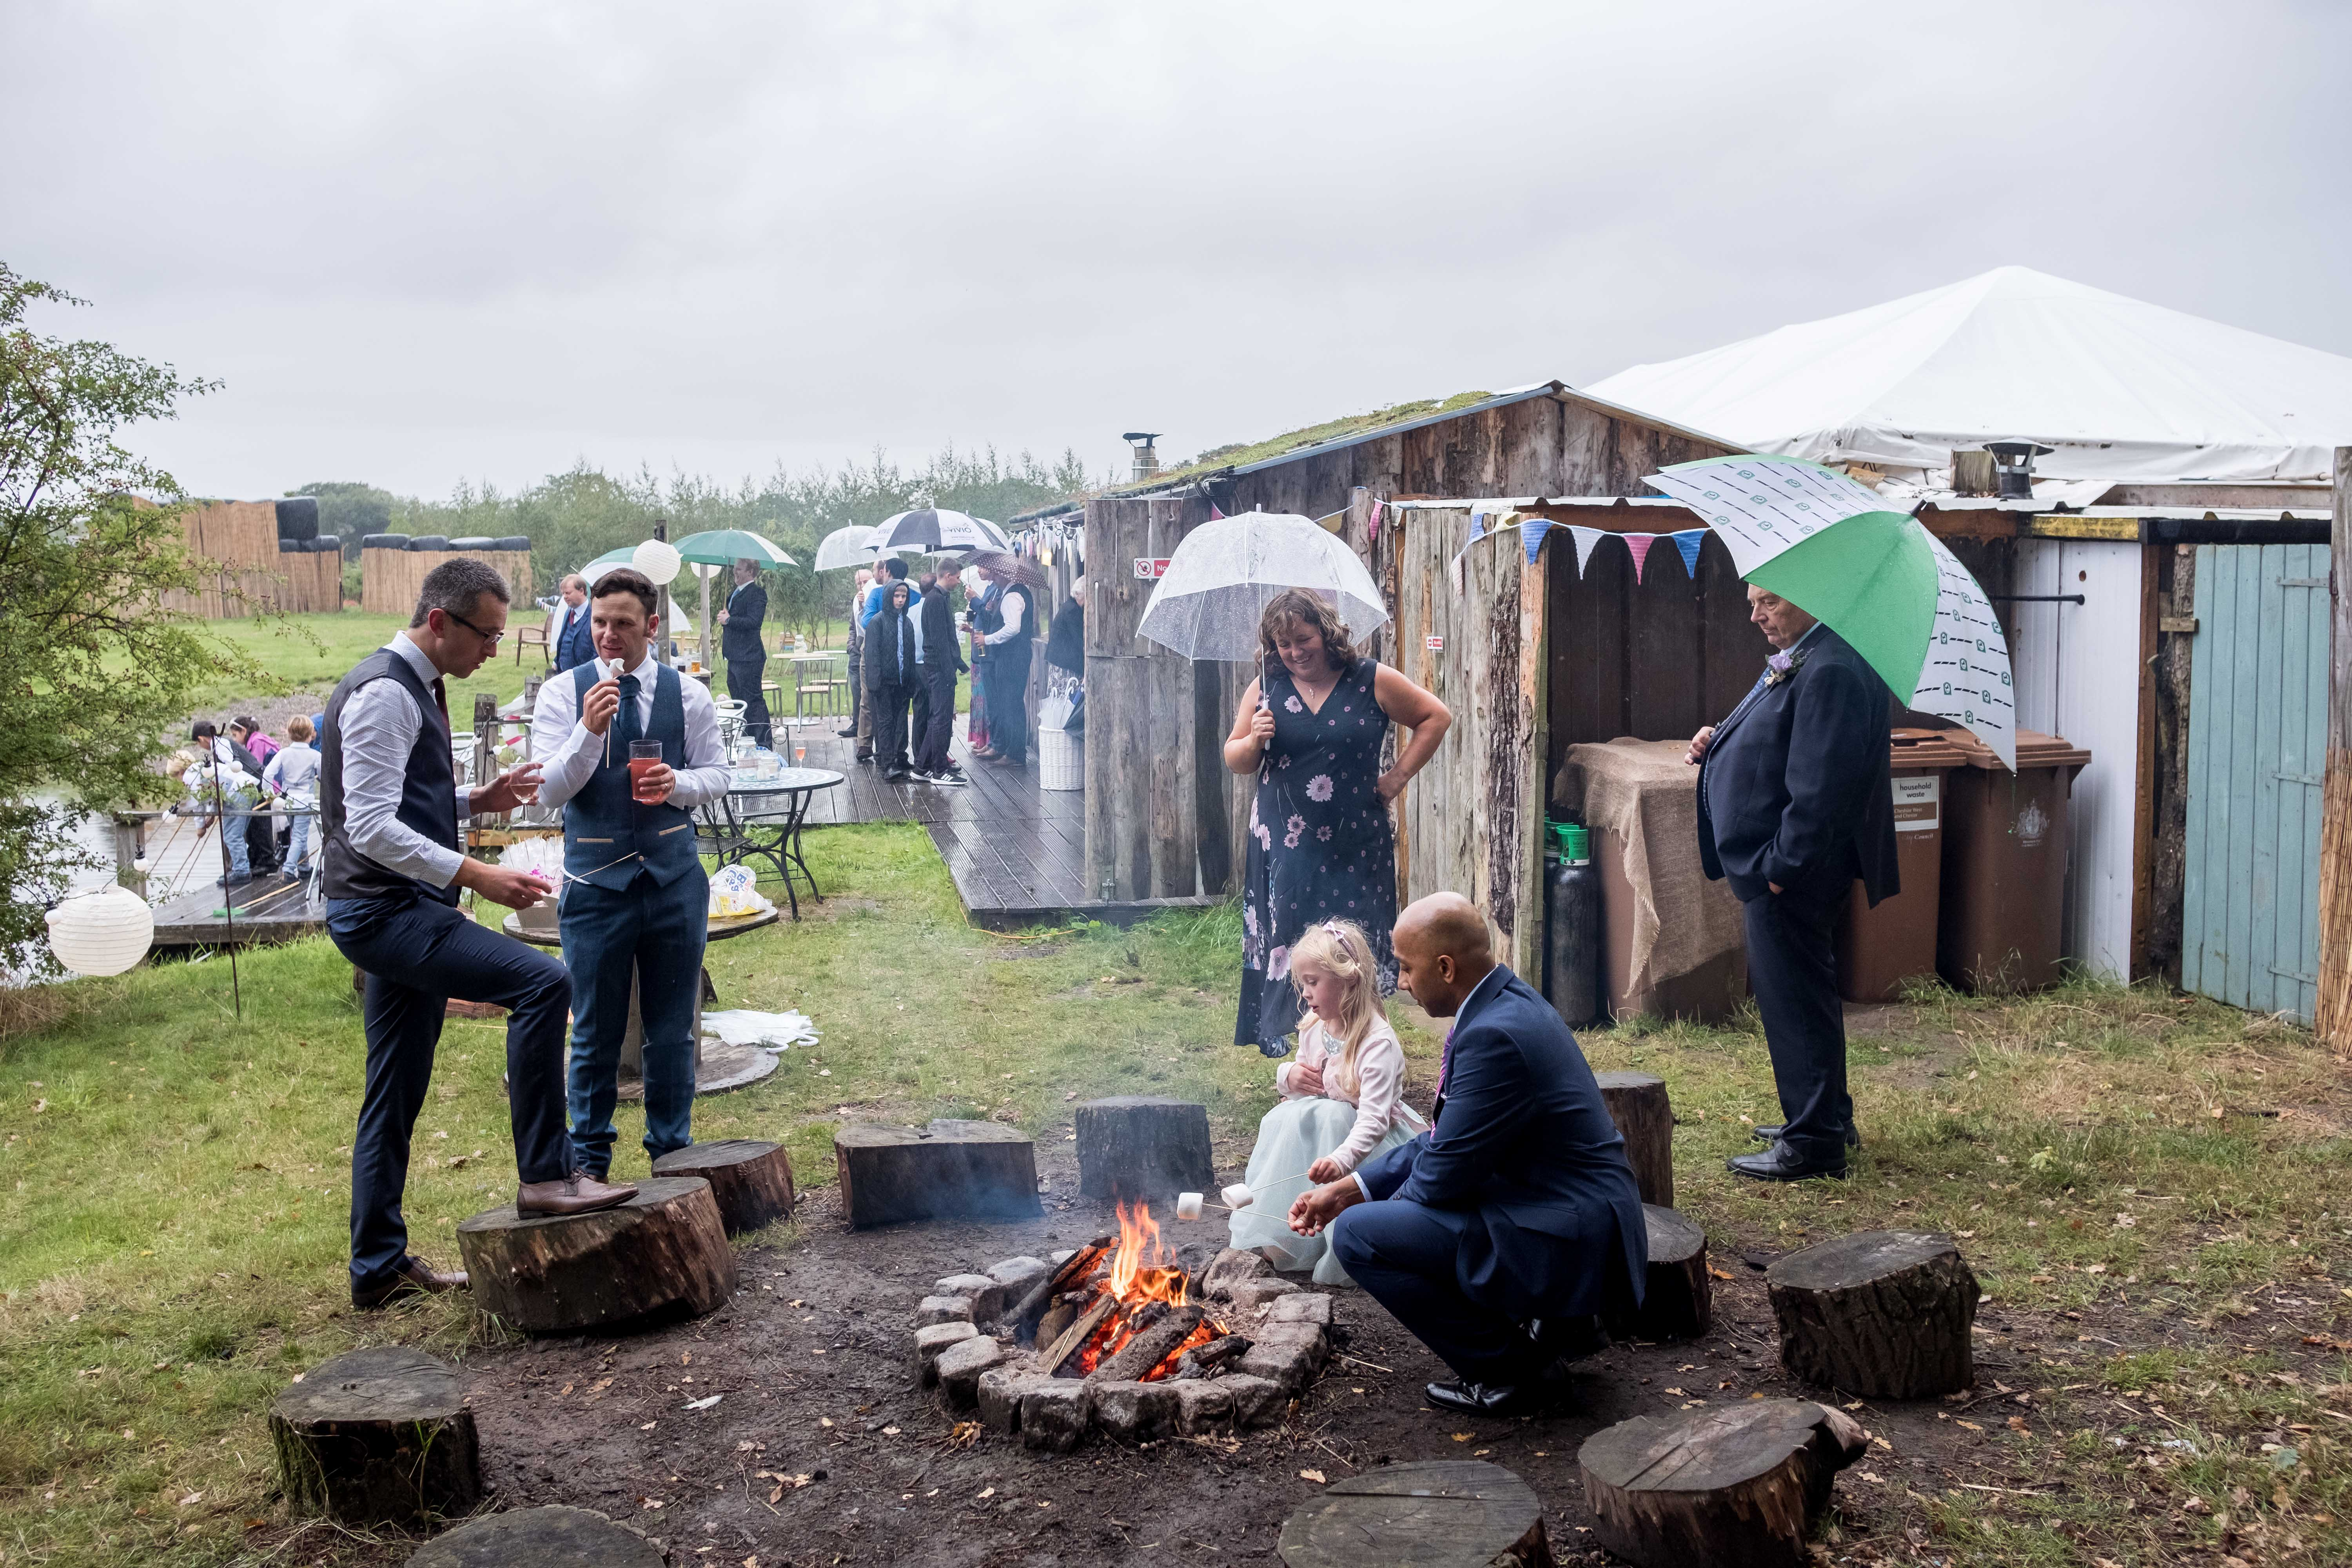 Outside wedding reception in the rain. Guests sitting around the fire toasting marshmallows.